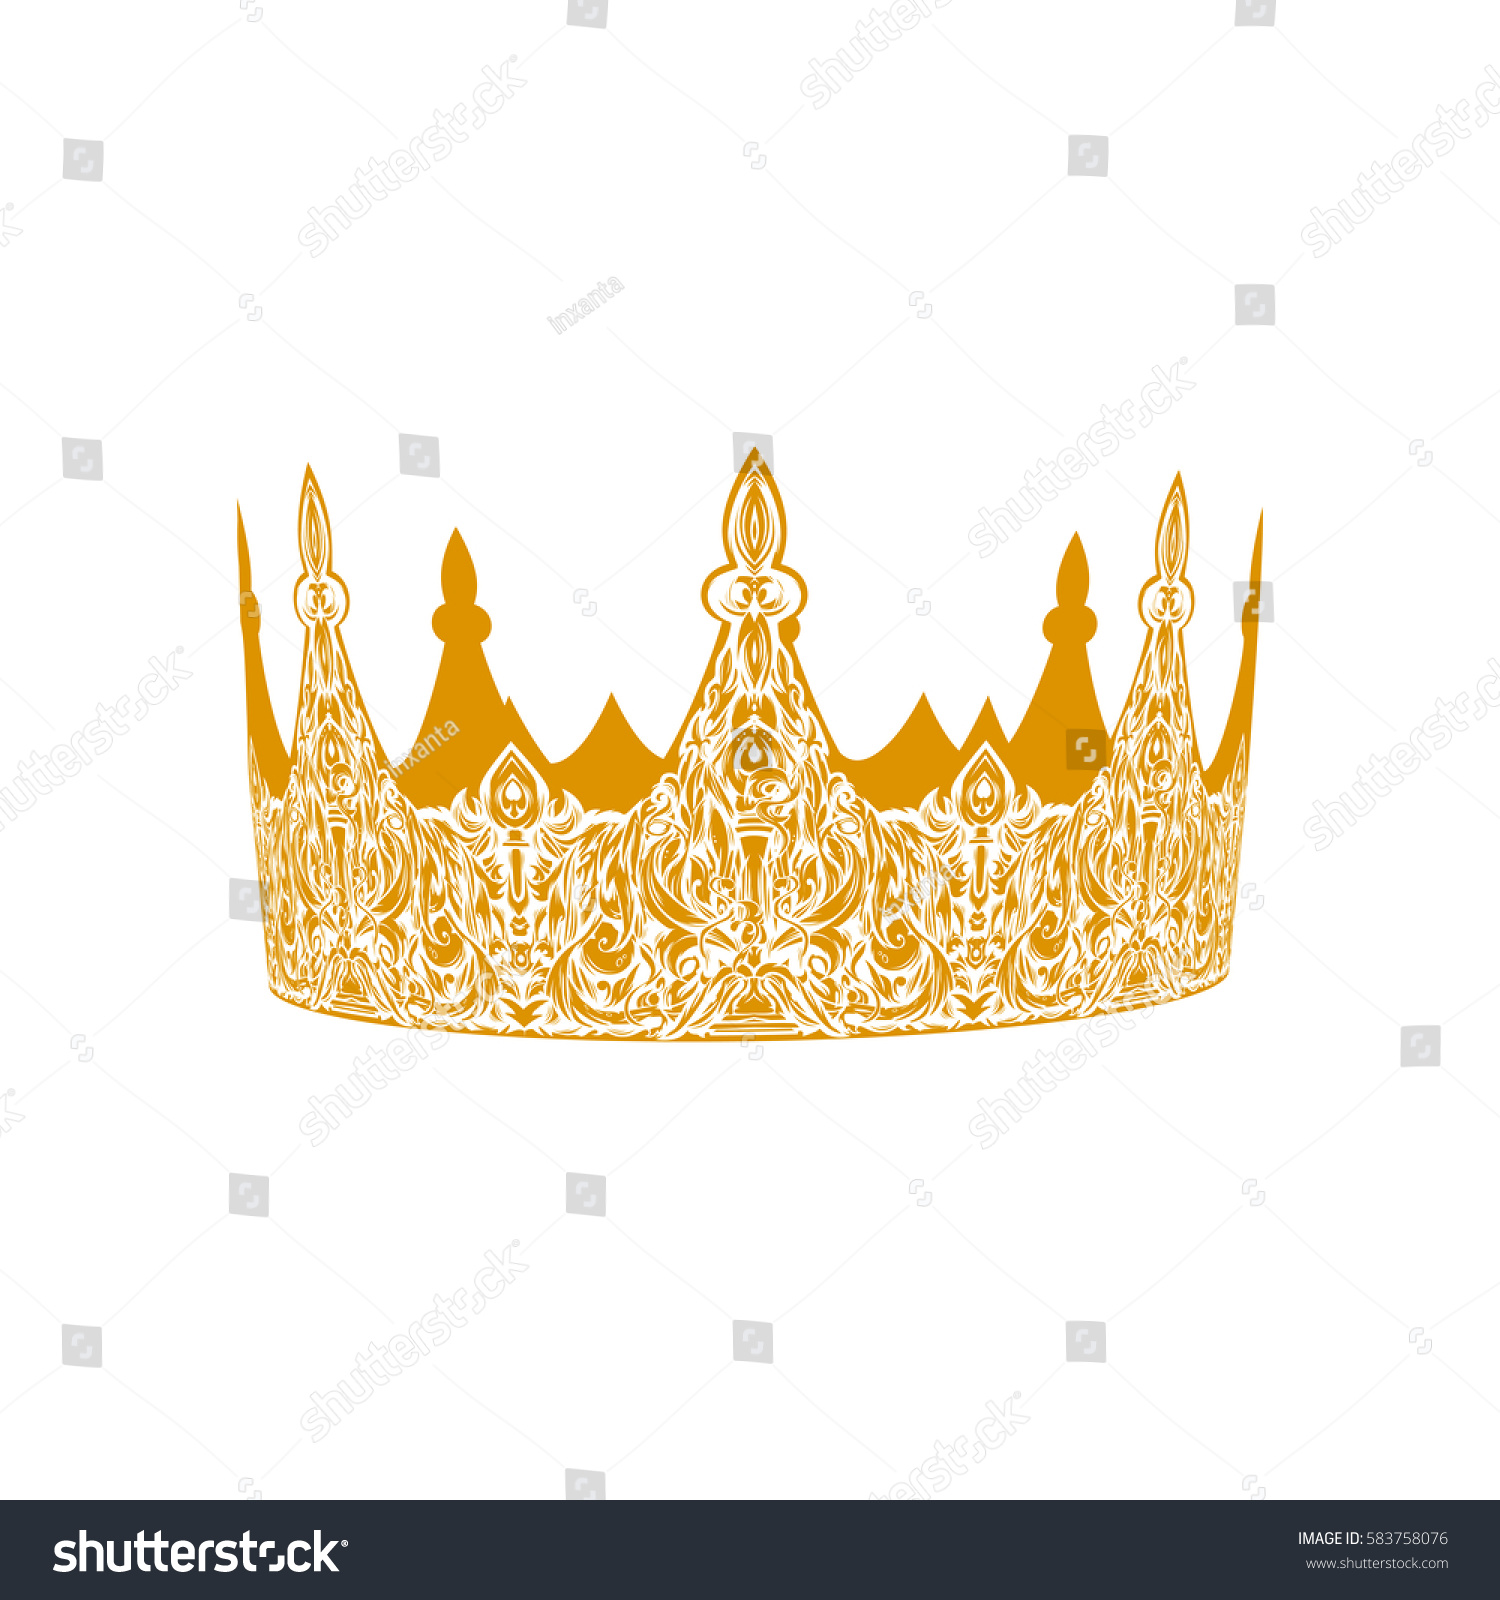 Beautiful gold vintage crown patterned old stock vector 583758076 beautiful gold vintage crown patterned old element symbol of power royal attribute biocorpaavc Gallery